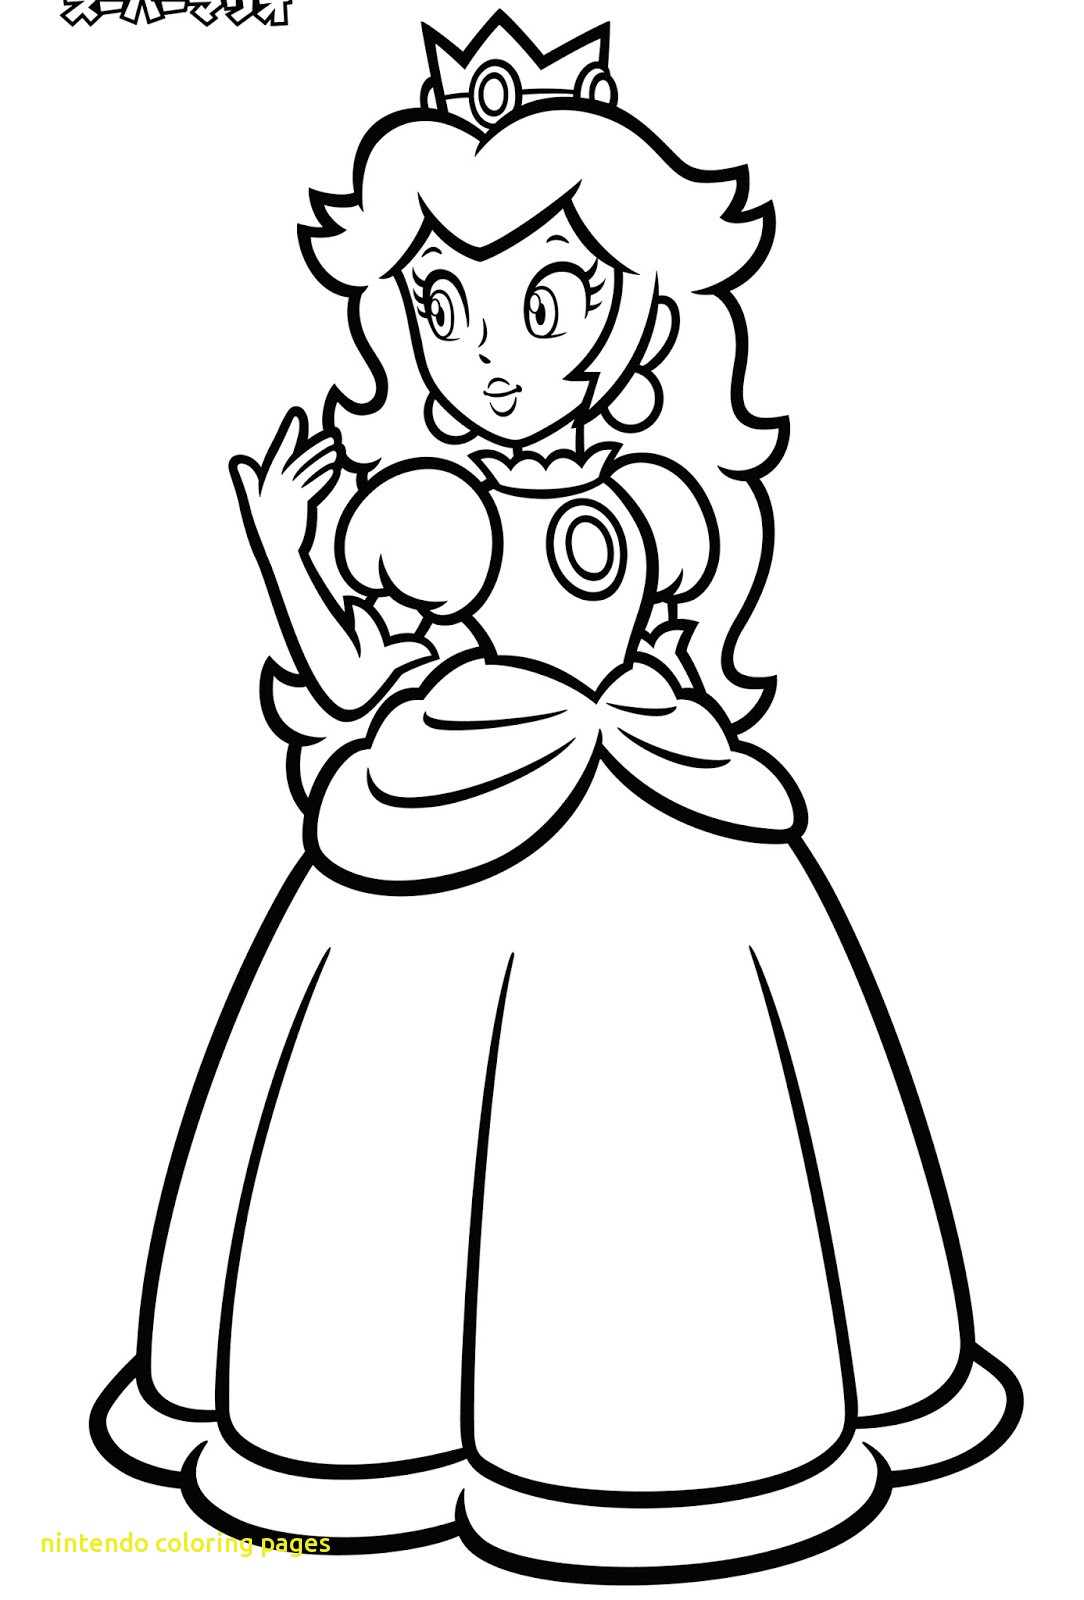 Nintendo Coloring Pages At Getcolorings